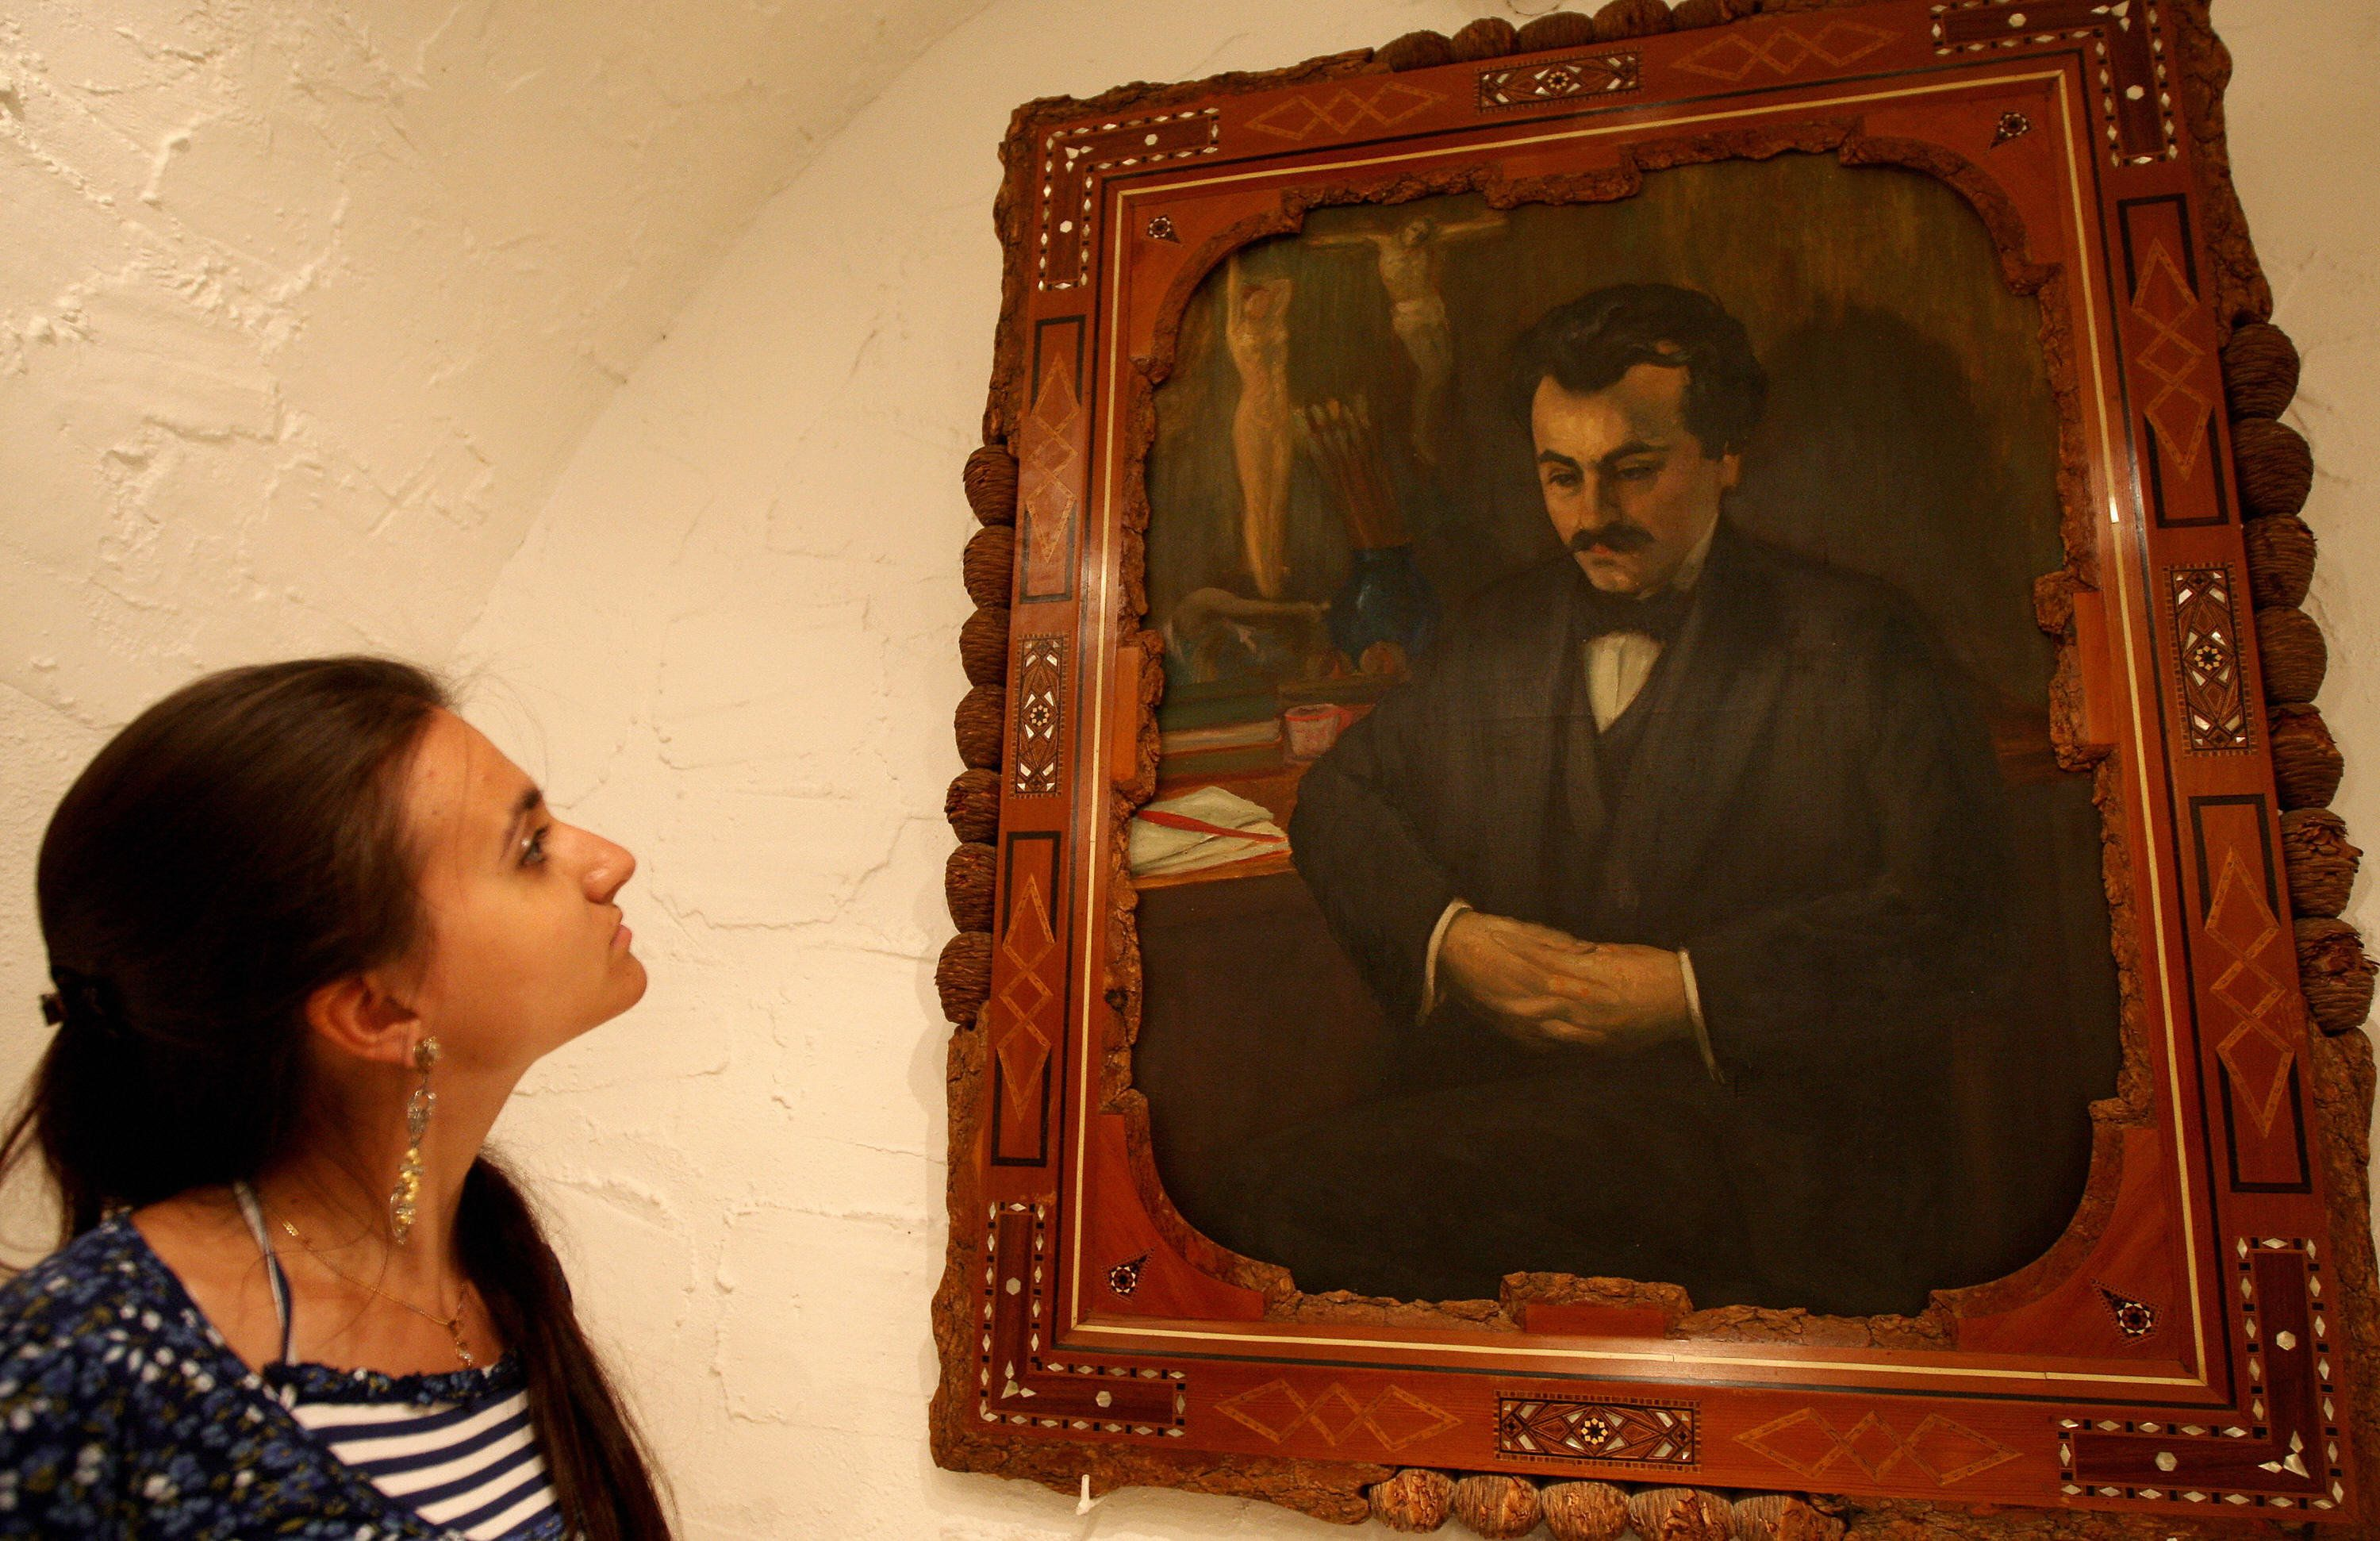 A self-portrait of Lebanese-American poet Kahlil Gibran hangs inhis home, now a museum, in the village of Besharre, Leb